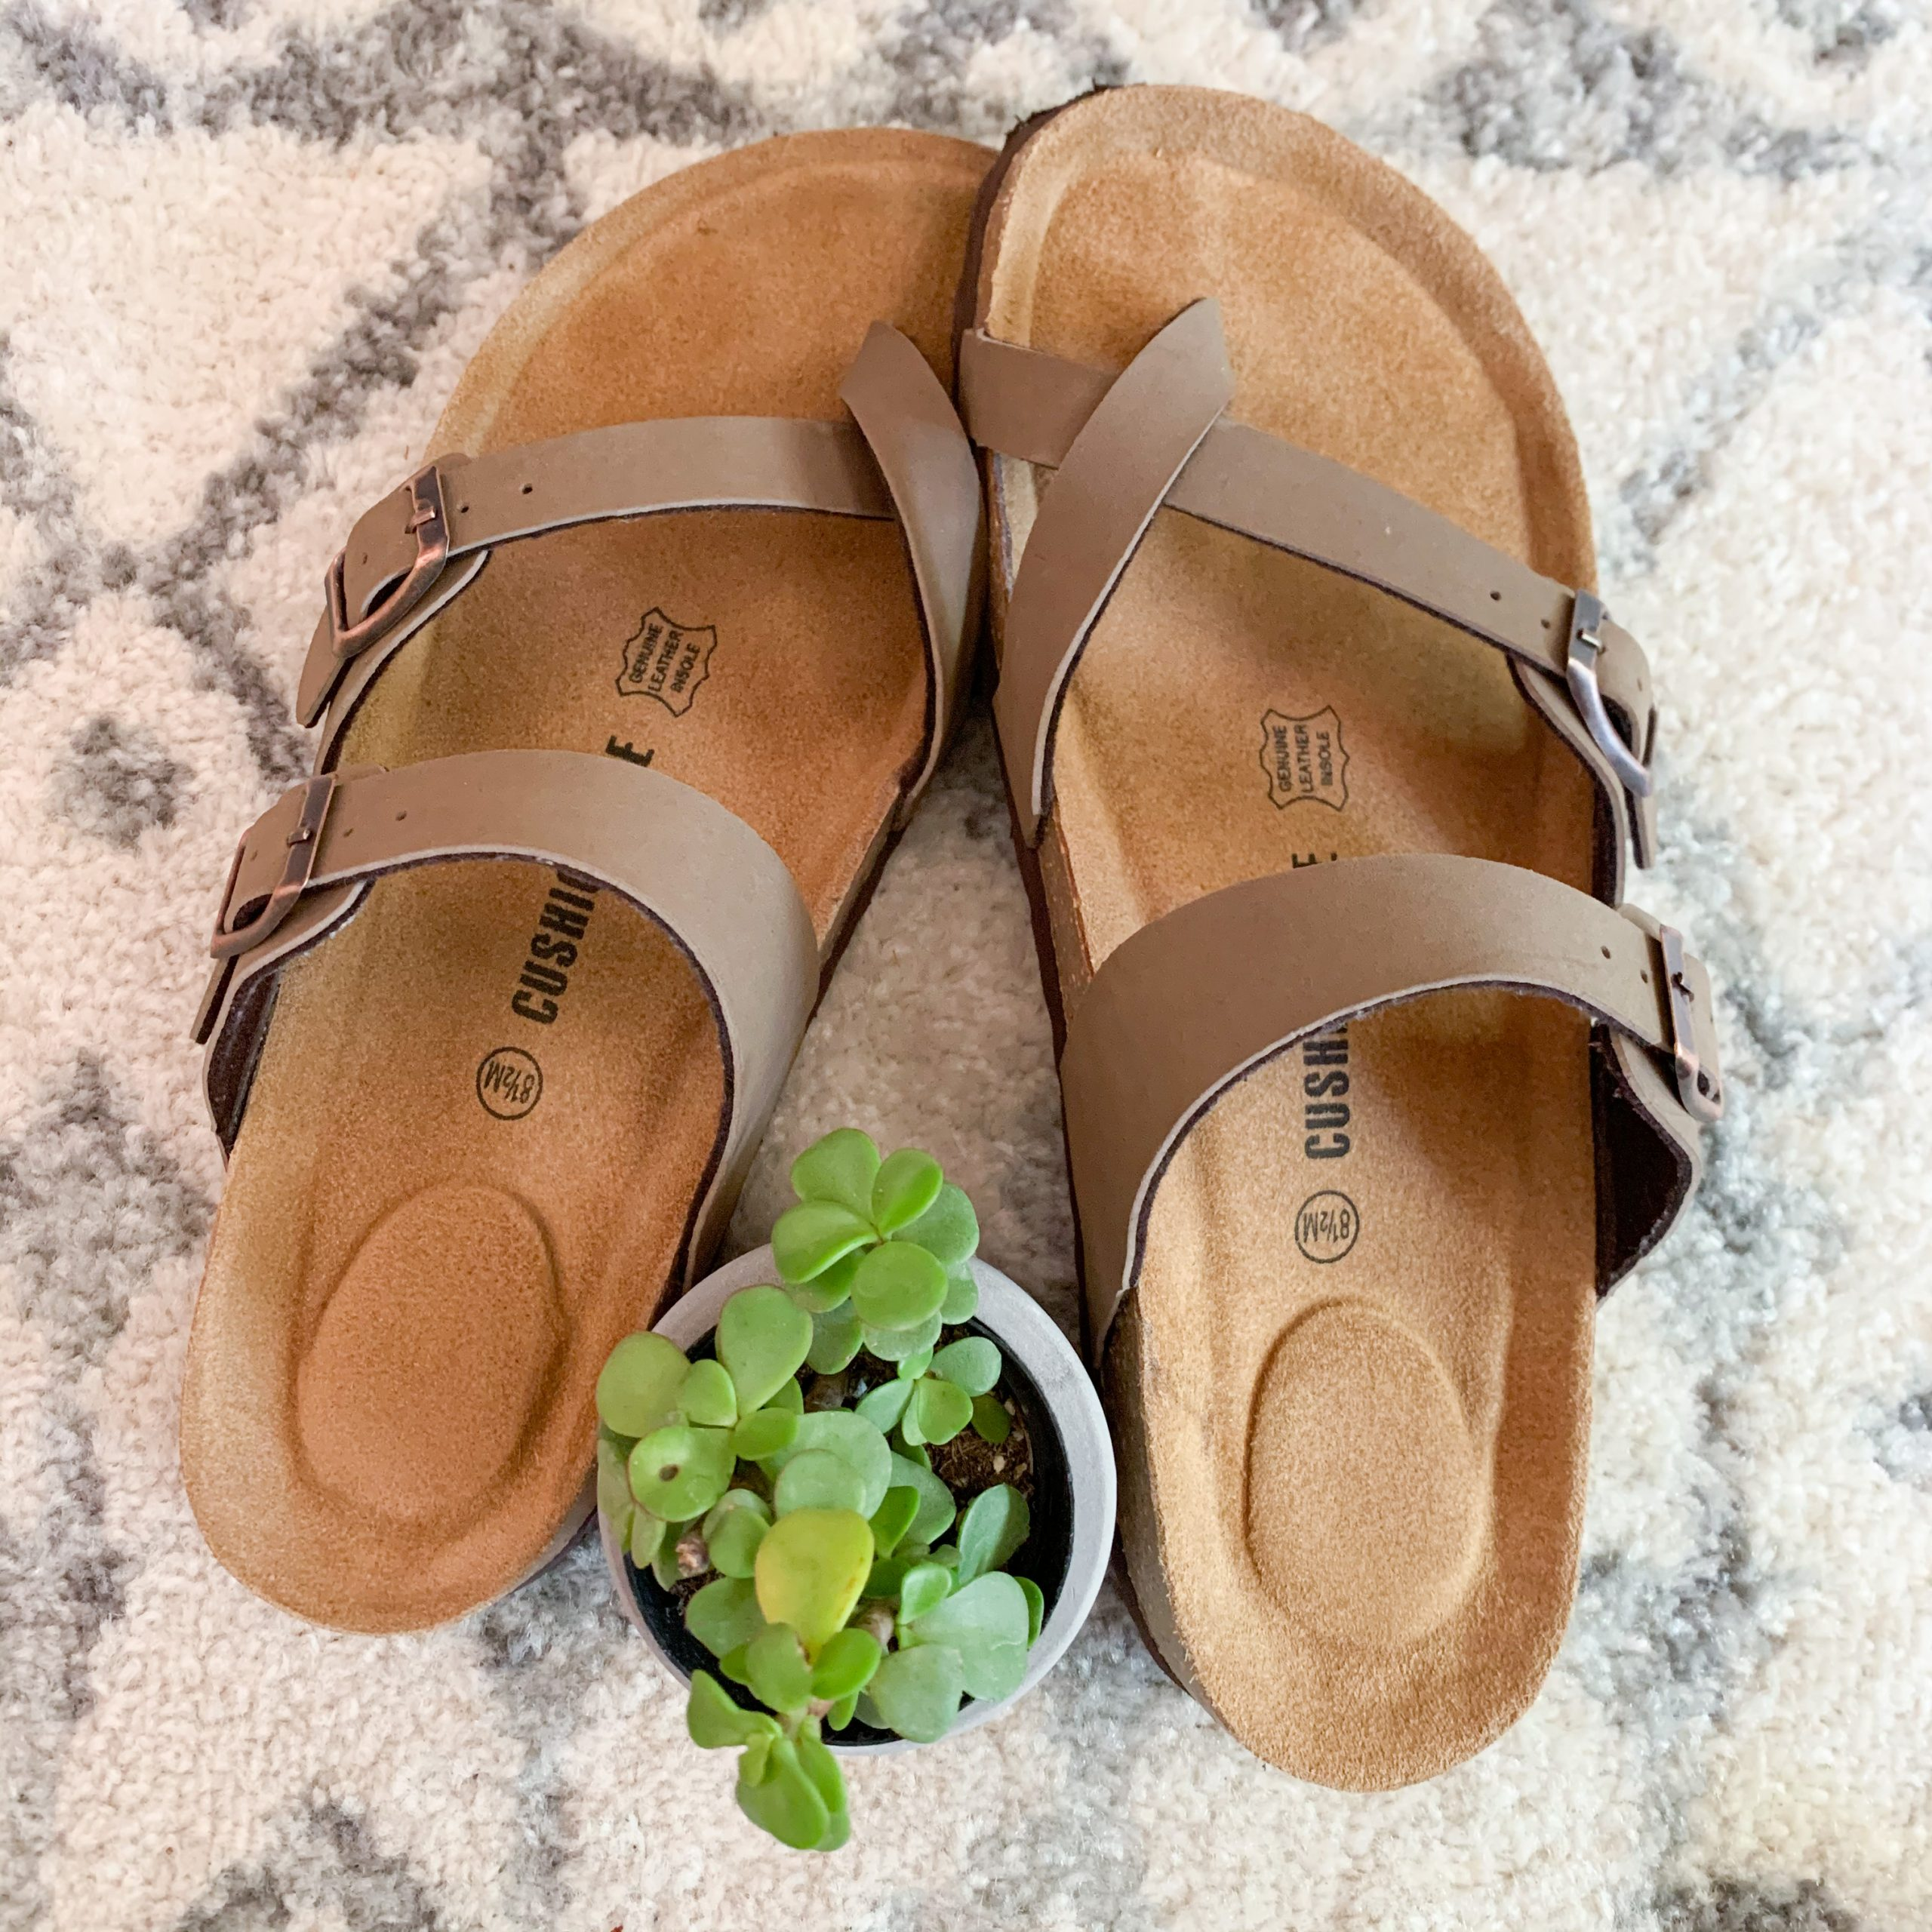 These Amazon Fashion women's cork sandals are the perfect summer sandals for moms! They are comfortable and budget friendly.